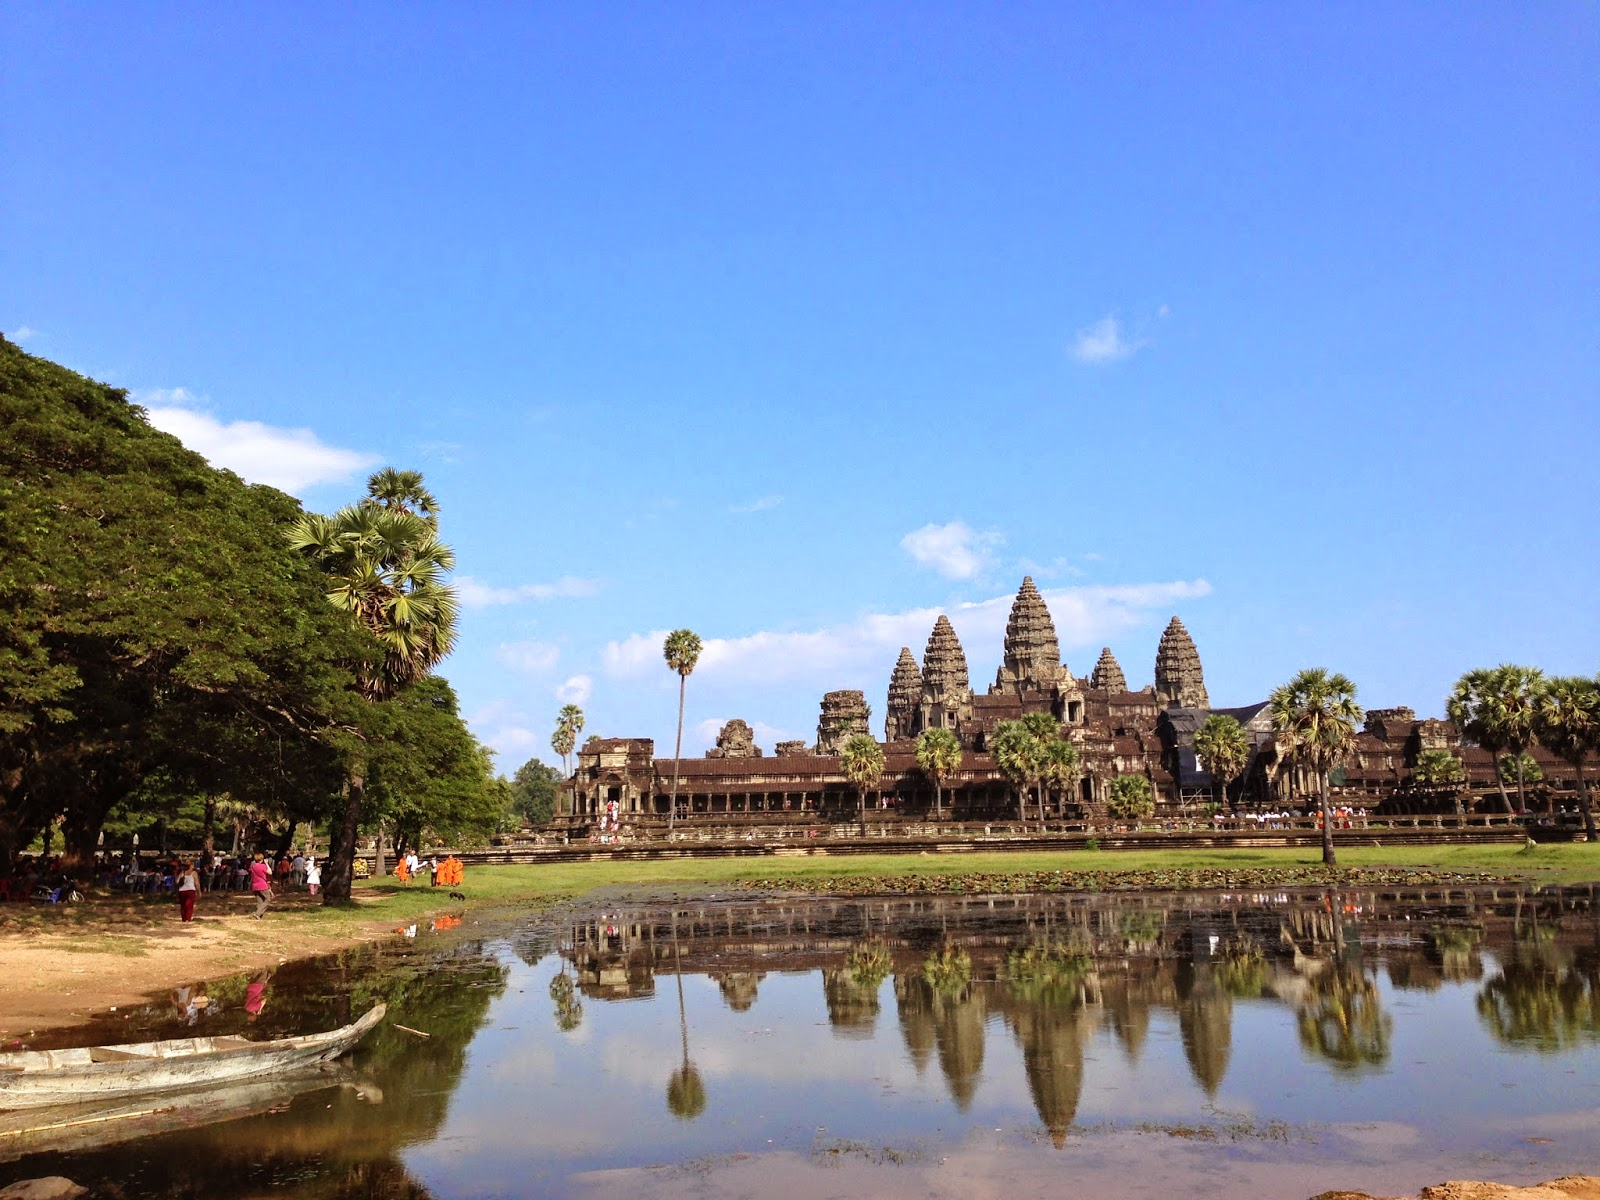 An evening in Angkor Wat